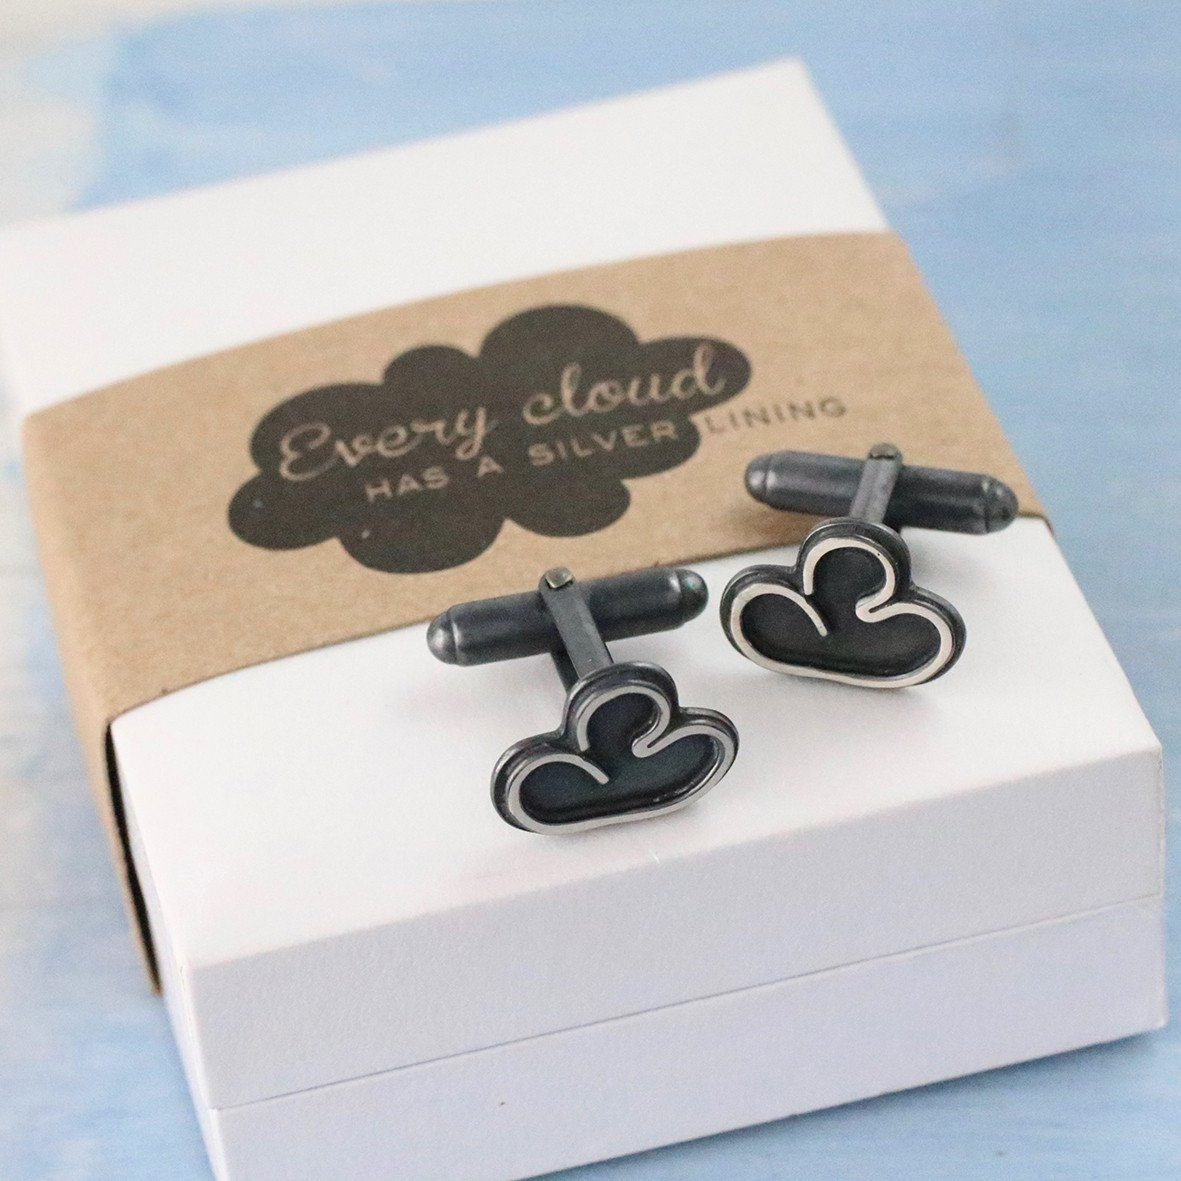 handmade every cloud has a silver lining cufflink